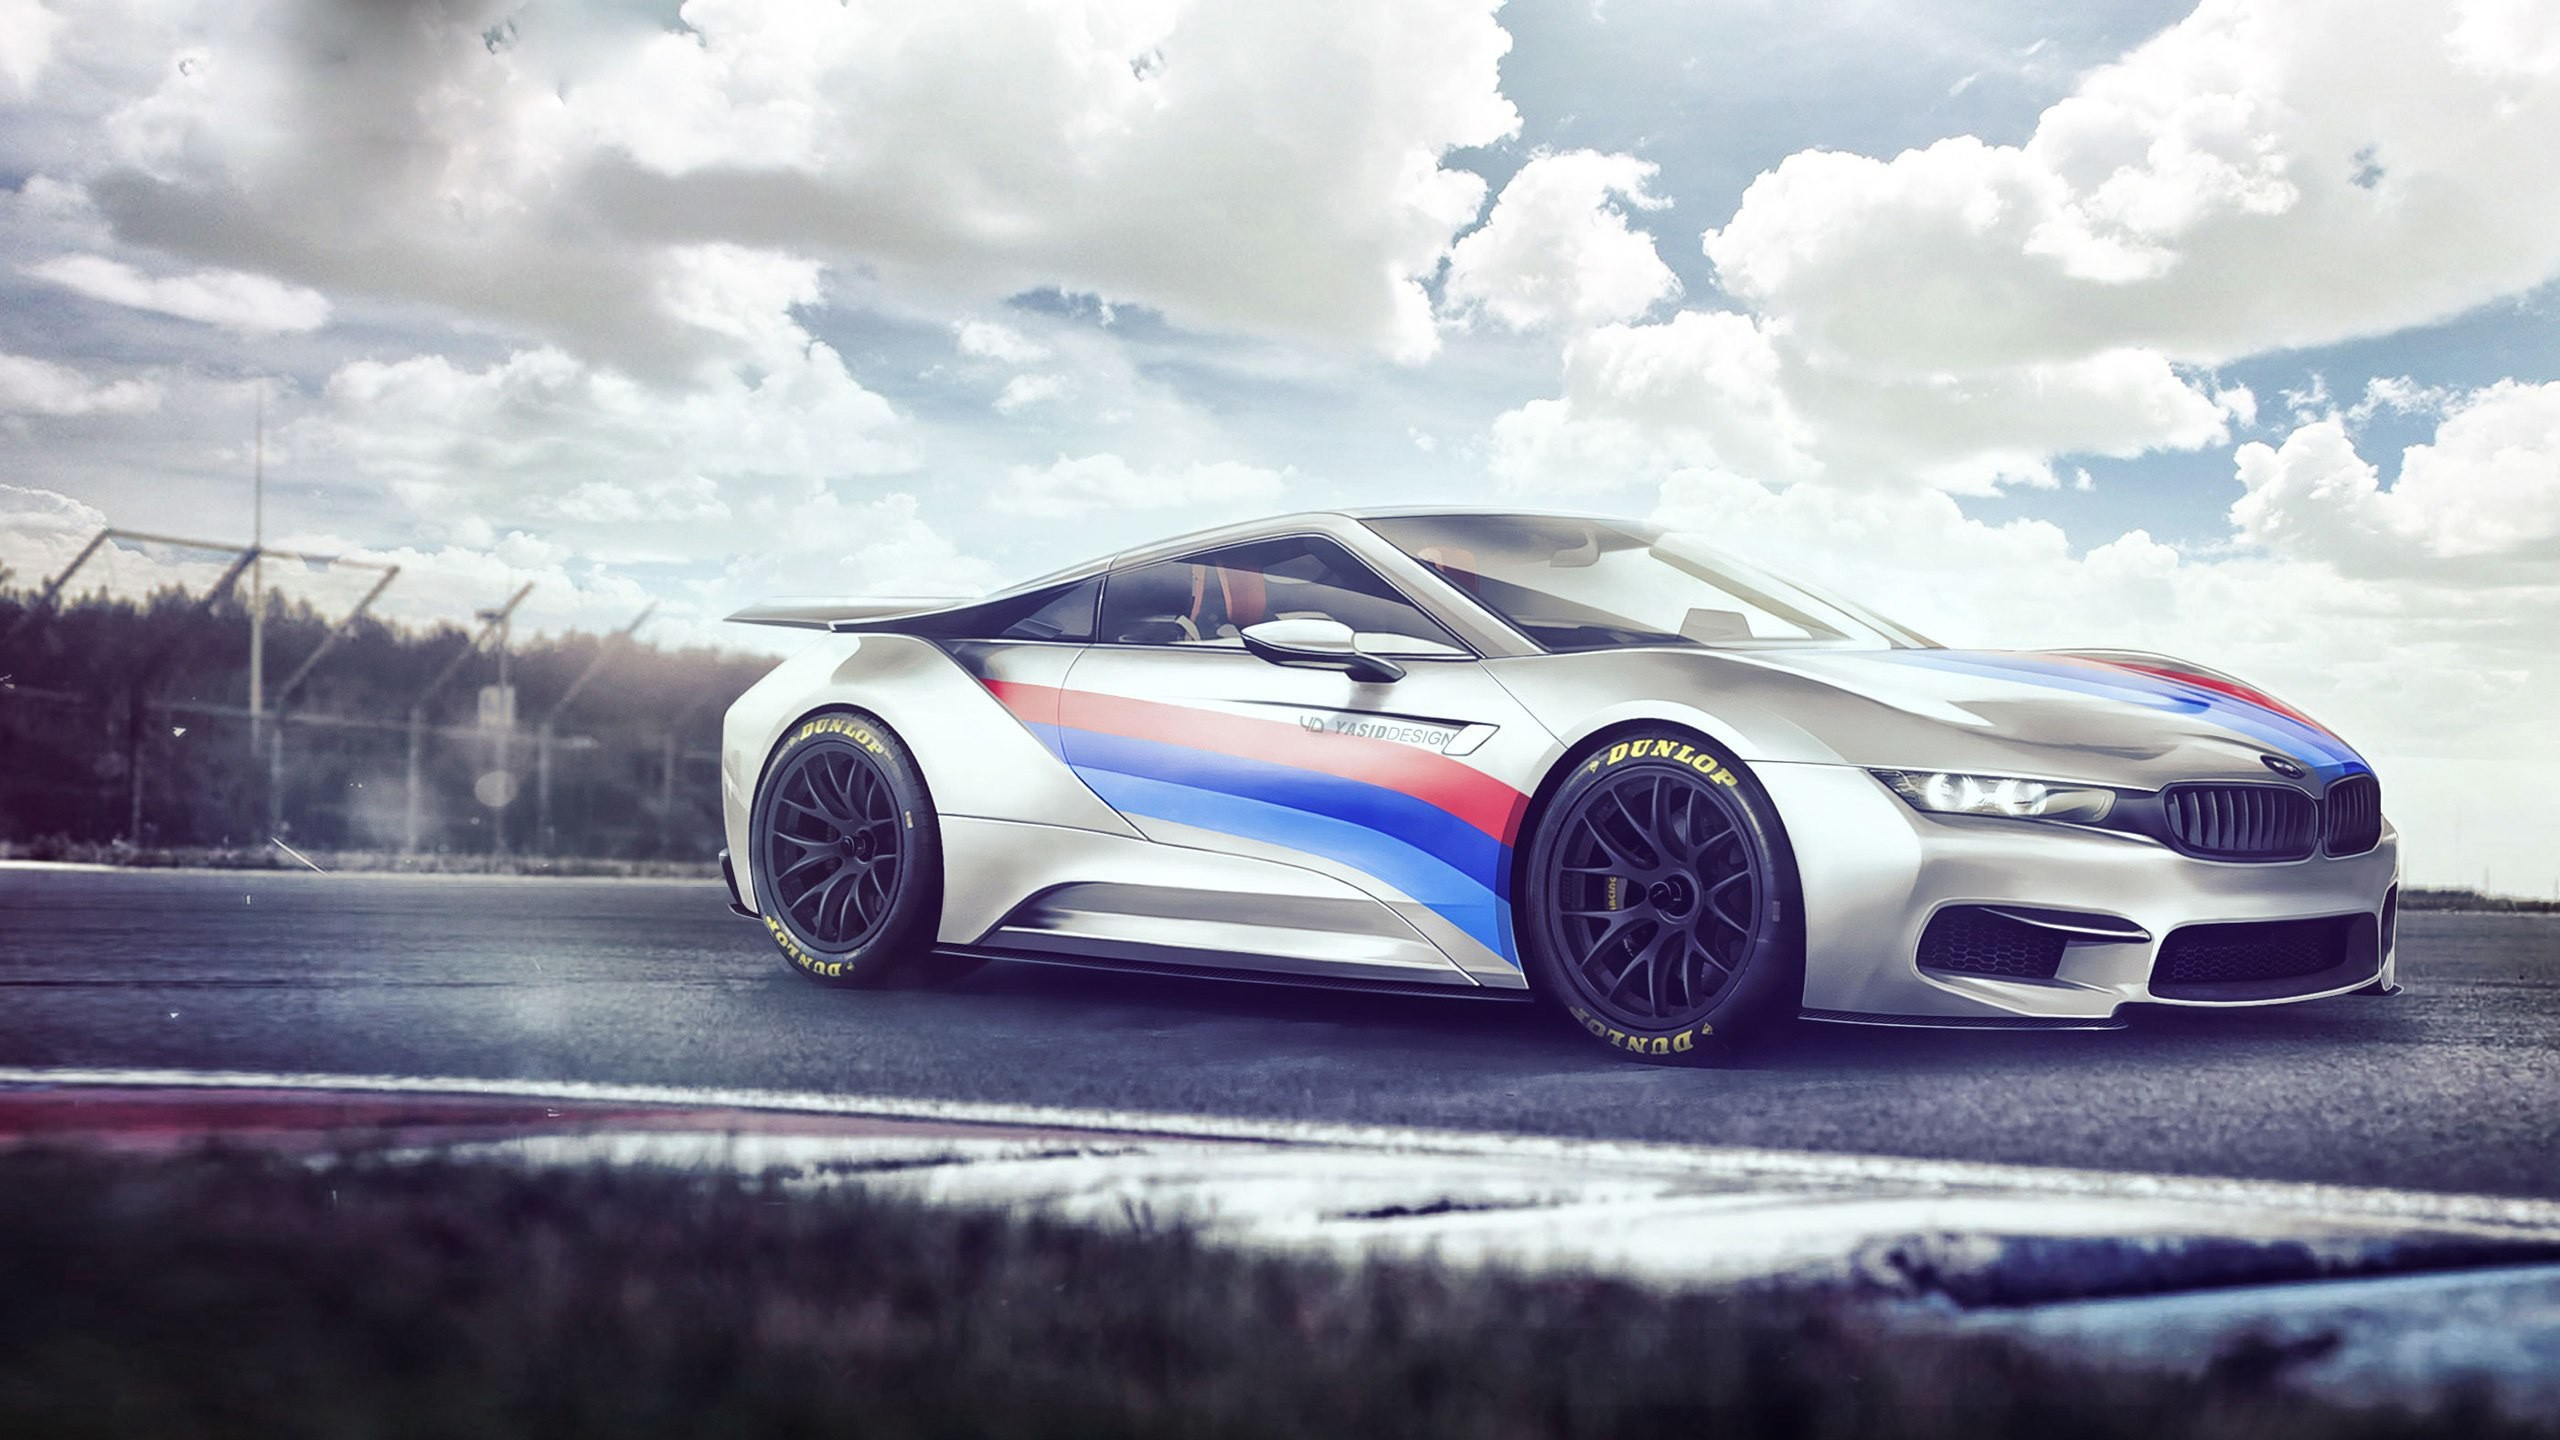 Benz Car Wallpapers Free Download Bmw I8 Concept Electro Wallpaper Hd Car Wallpapers Id